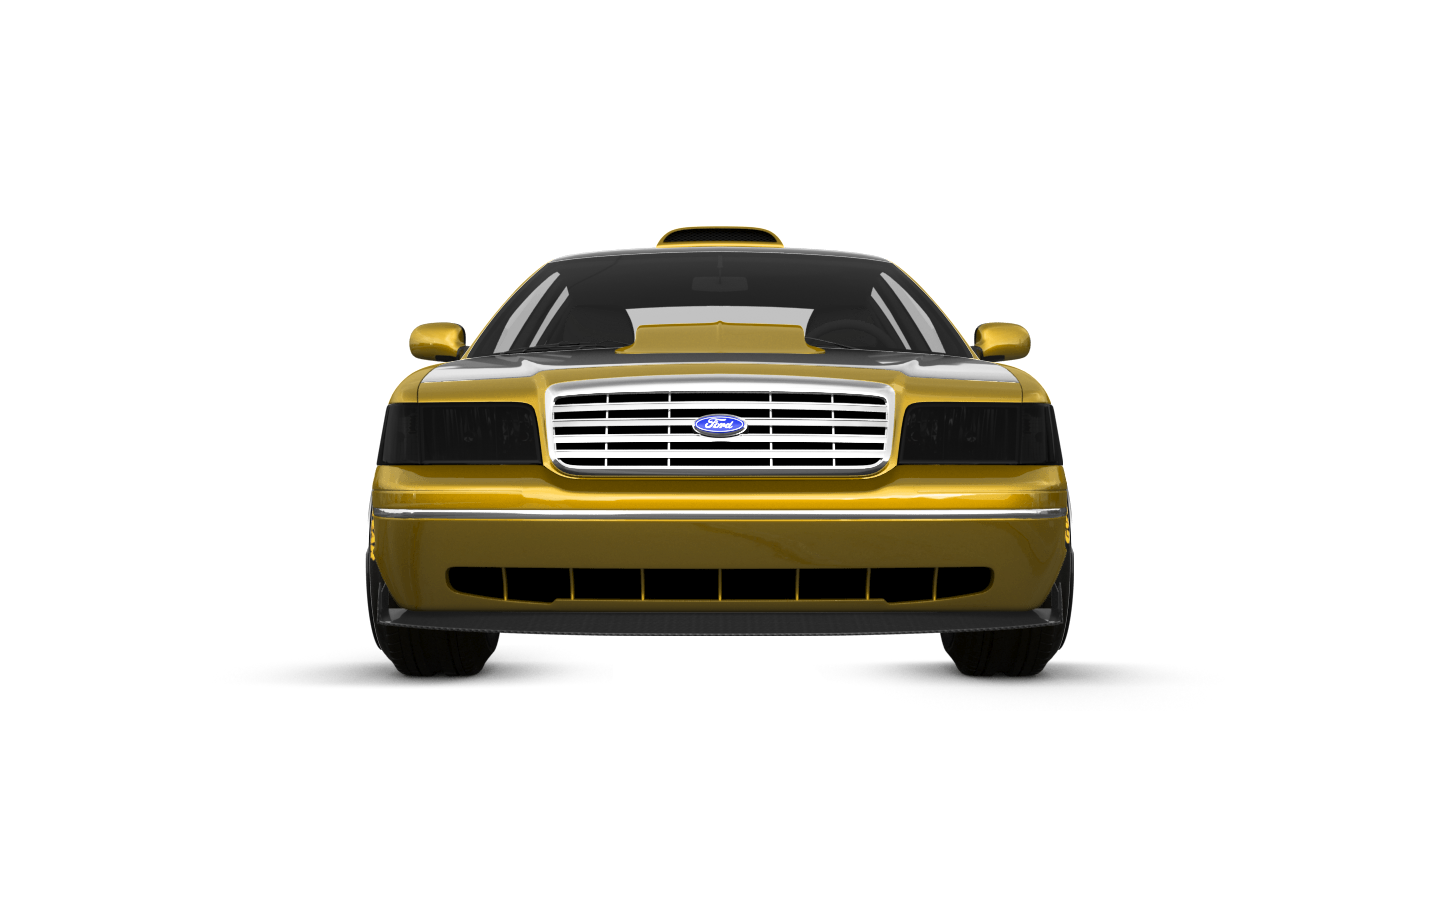 Ford Crown Victoria'07